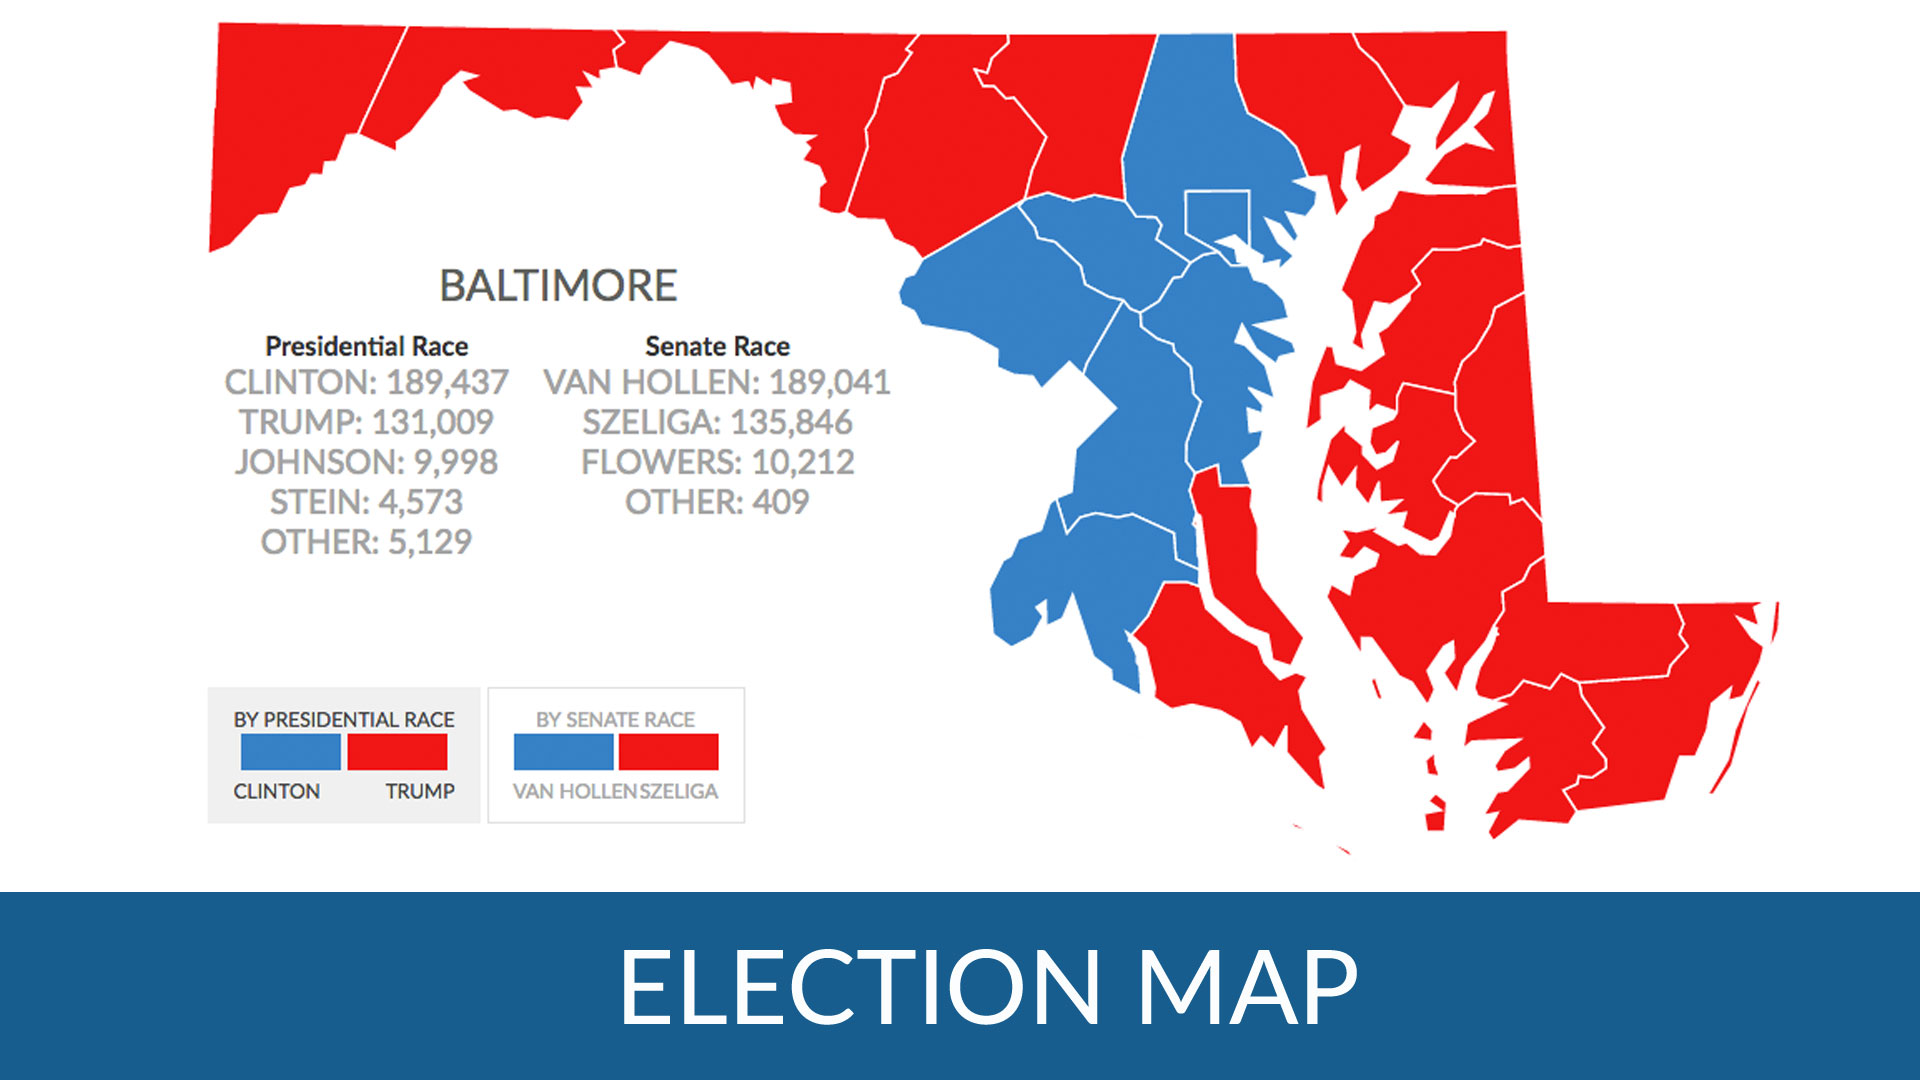 How did Maryland counties vote in the 2016 Presidential election?